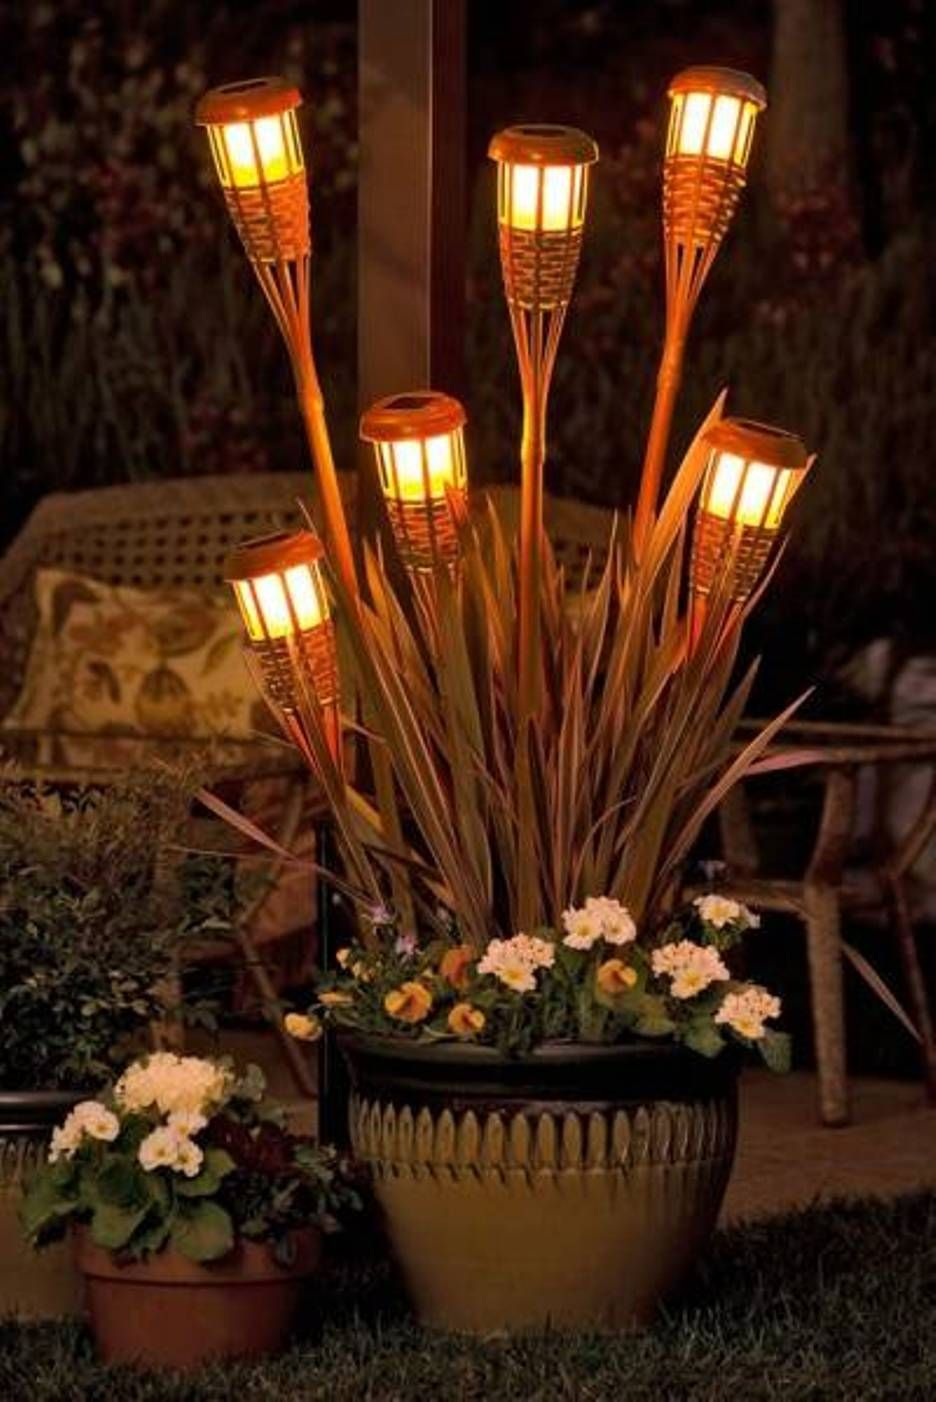 Torches Outdoor Patio Lights Stunning Decorative Gallery Designarthouse